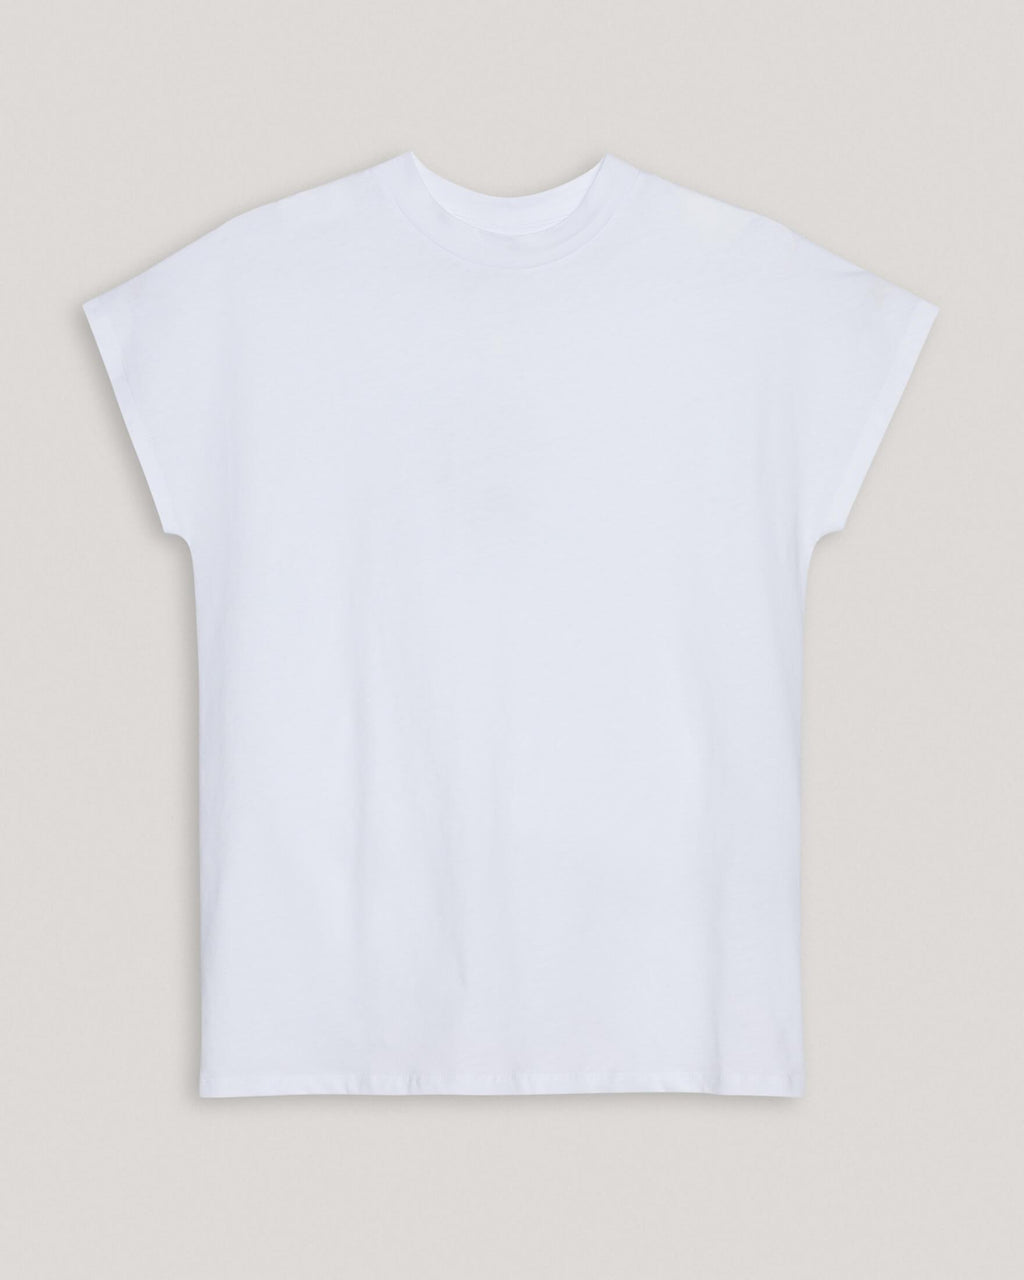 variant_2 | EN Shirt Basic White Women won hundred | DE T-Shirt Basic Weiß Damen won hundred